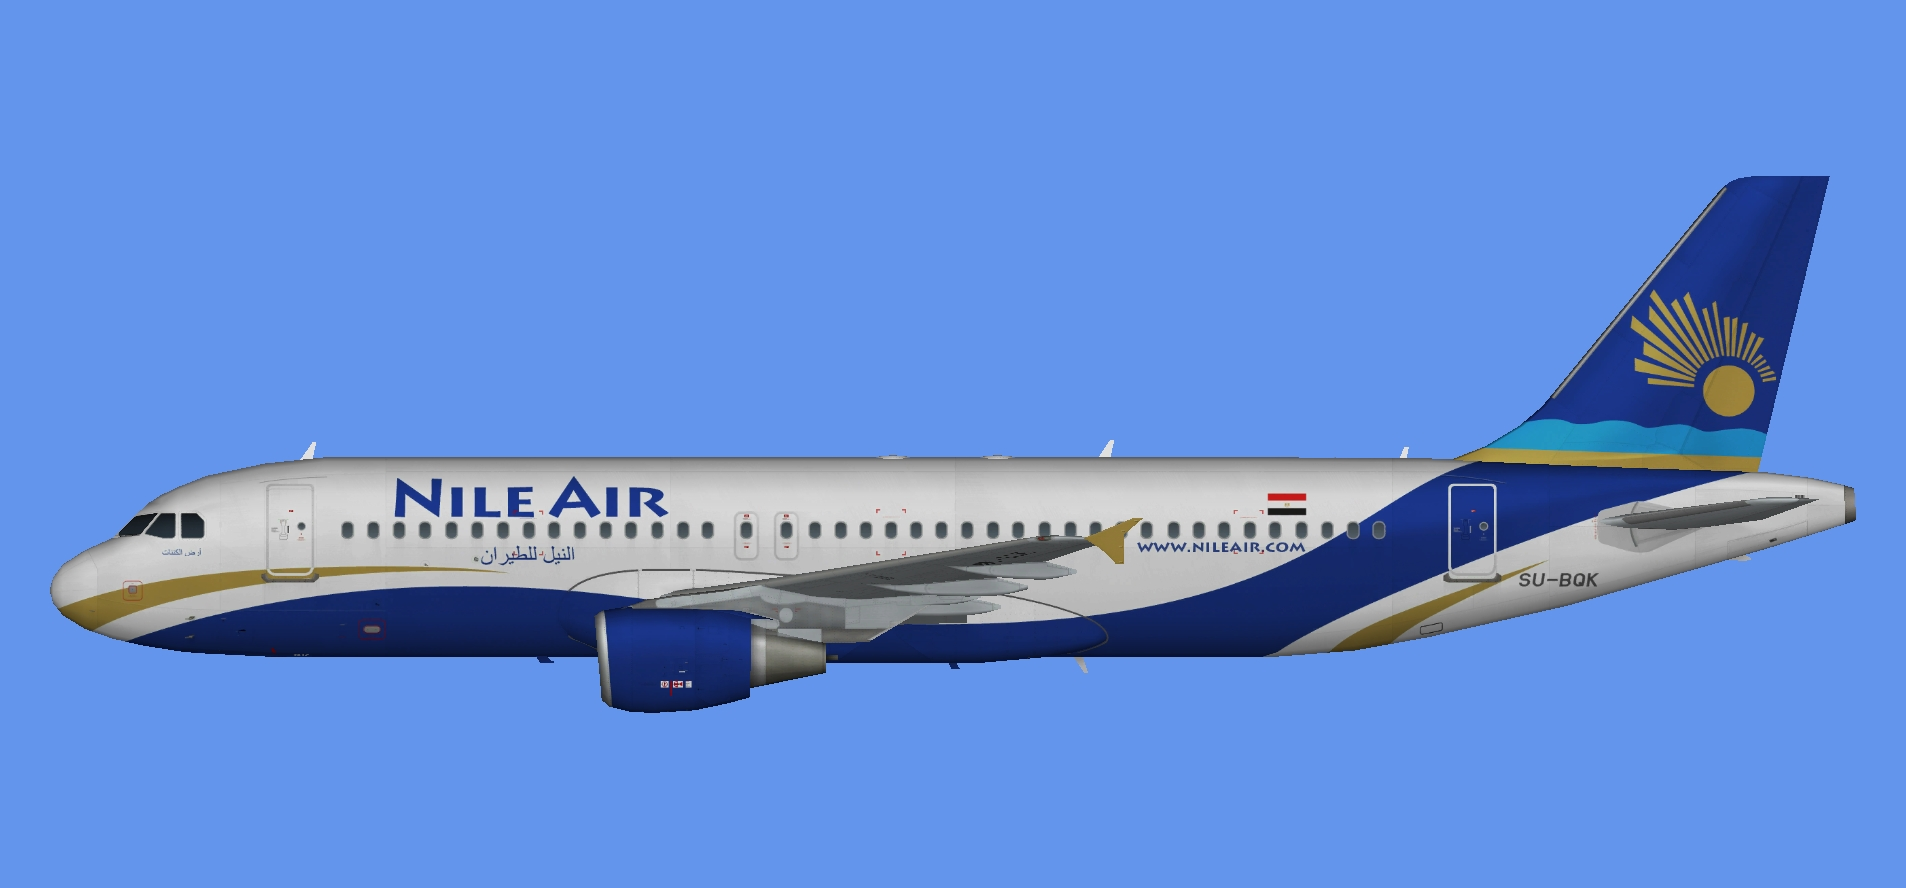 Nile Air Airbus A320 CFM